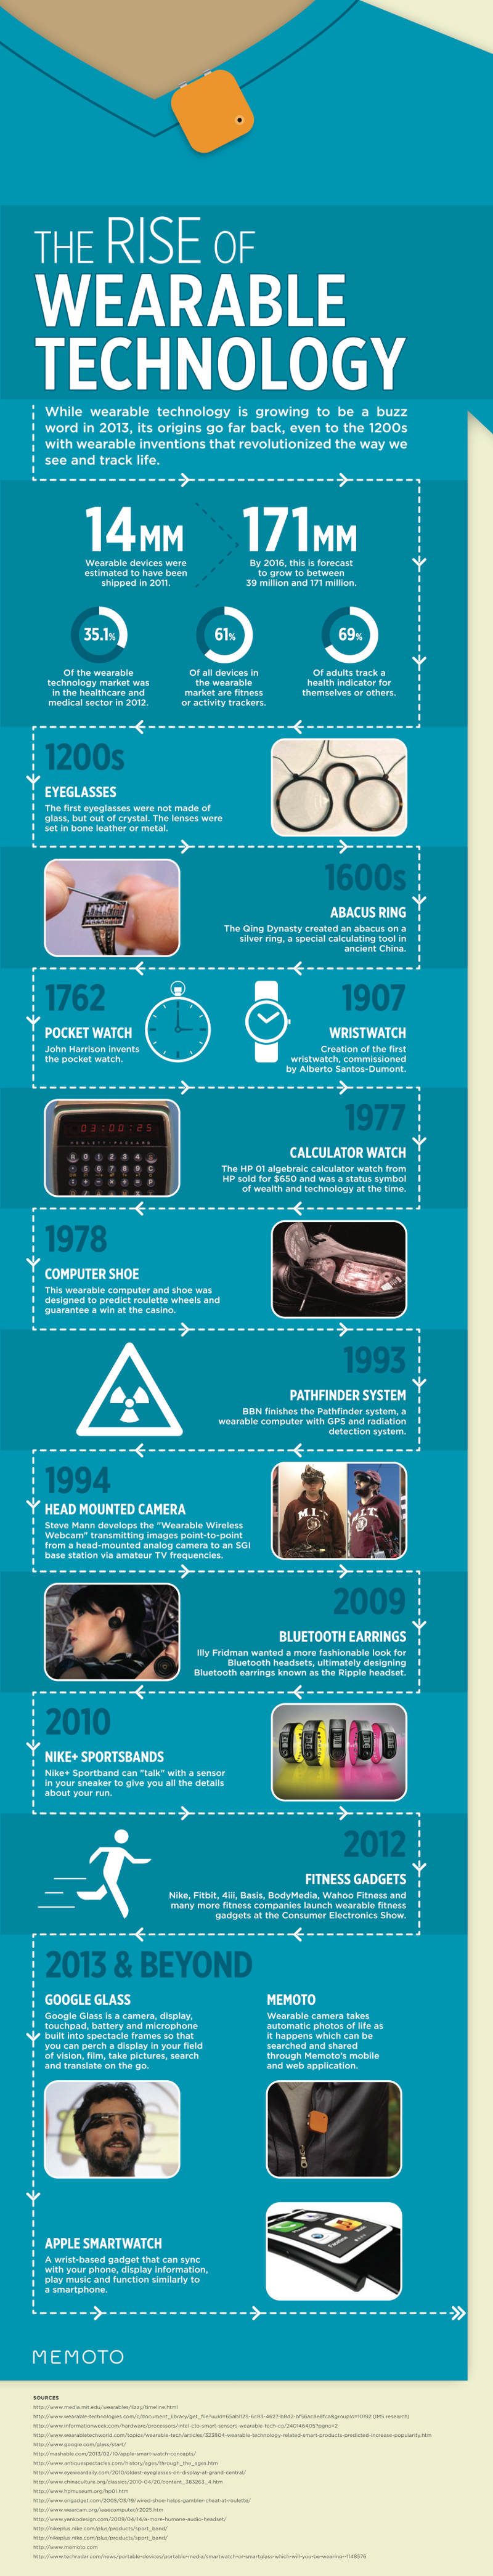 Wearable-Technology-Statistics